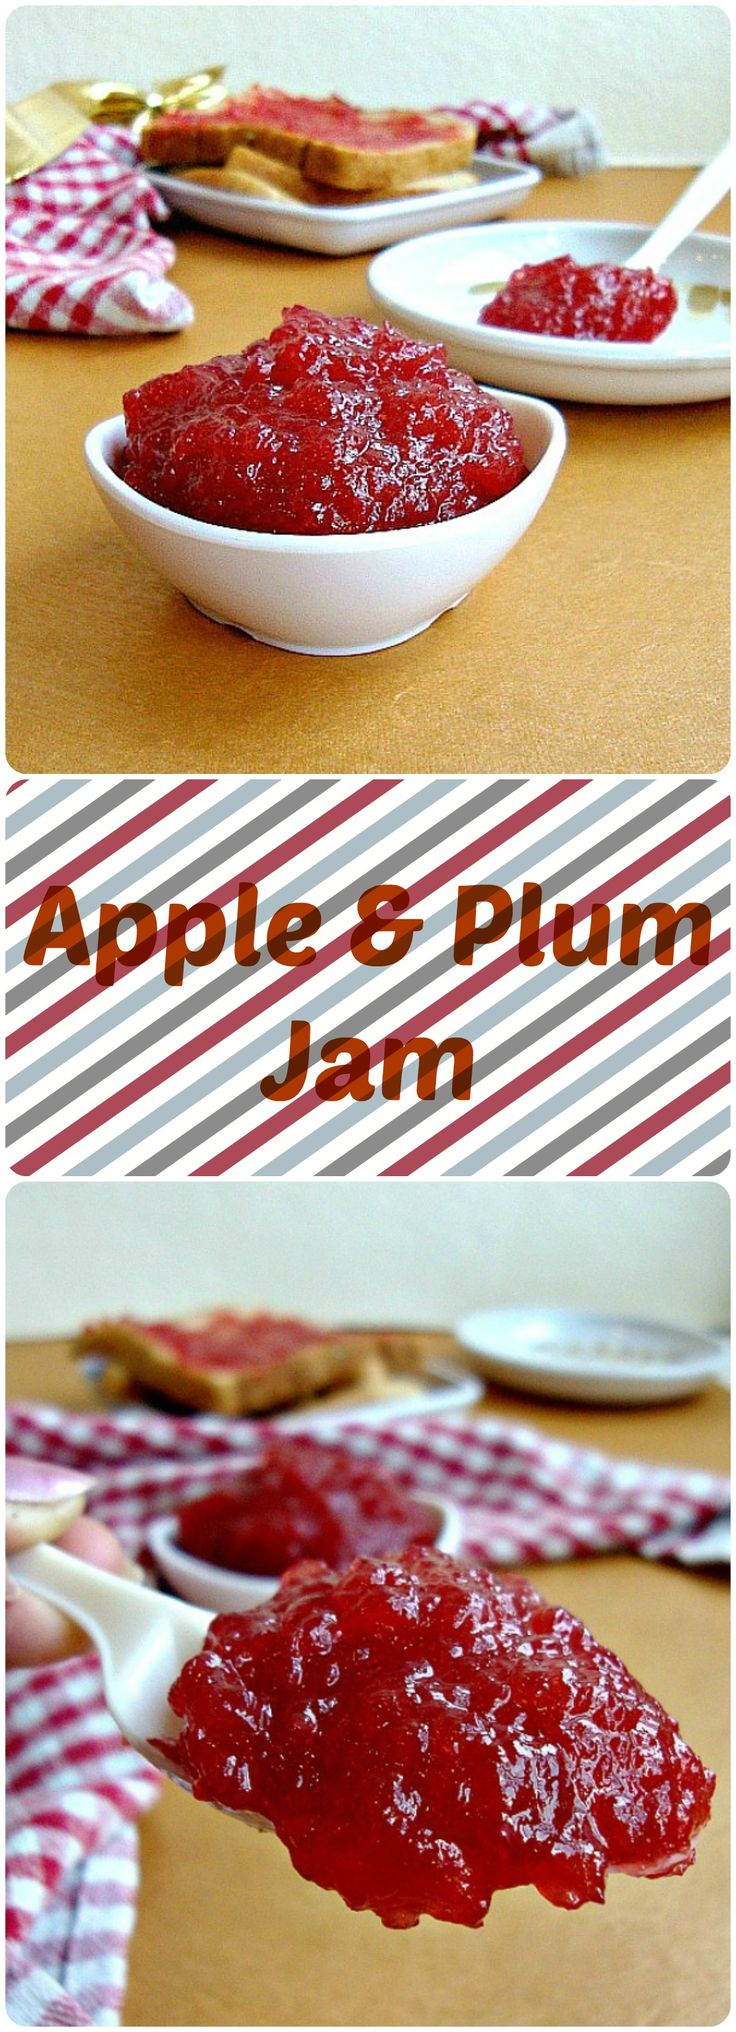 Apple & Plum Jam Recipe | This homemade apple and plum jam is very easy to make and gets ready with few ingredients.